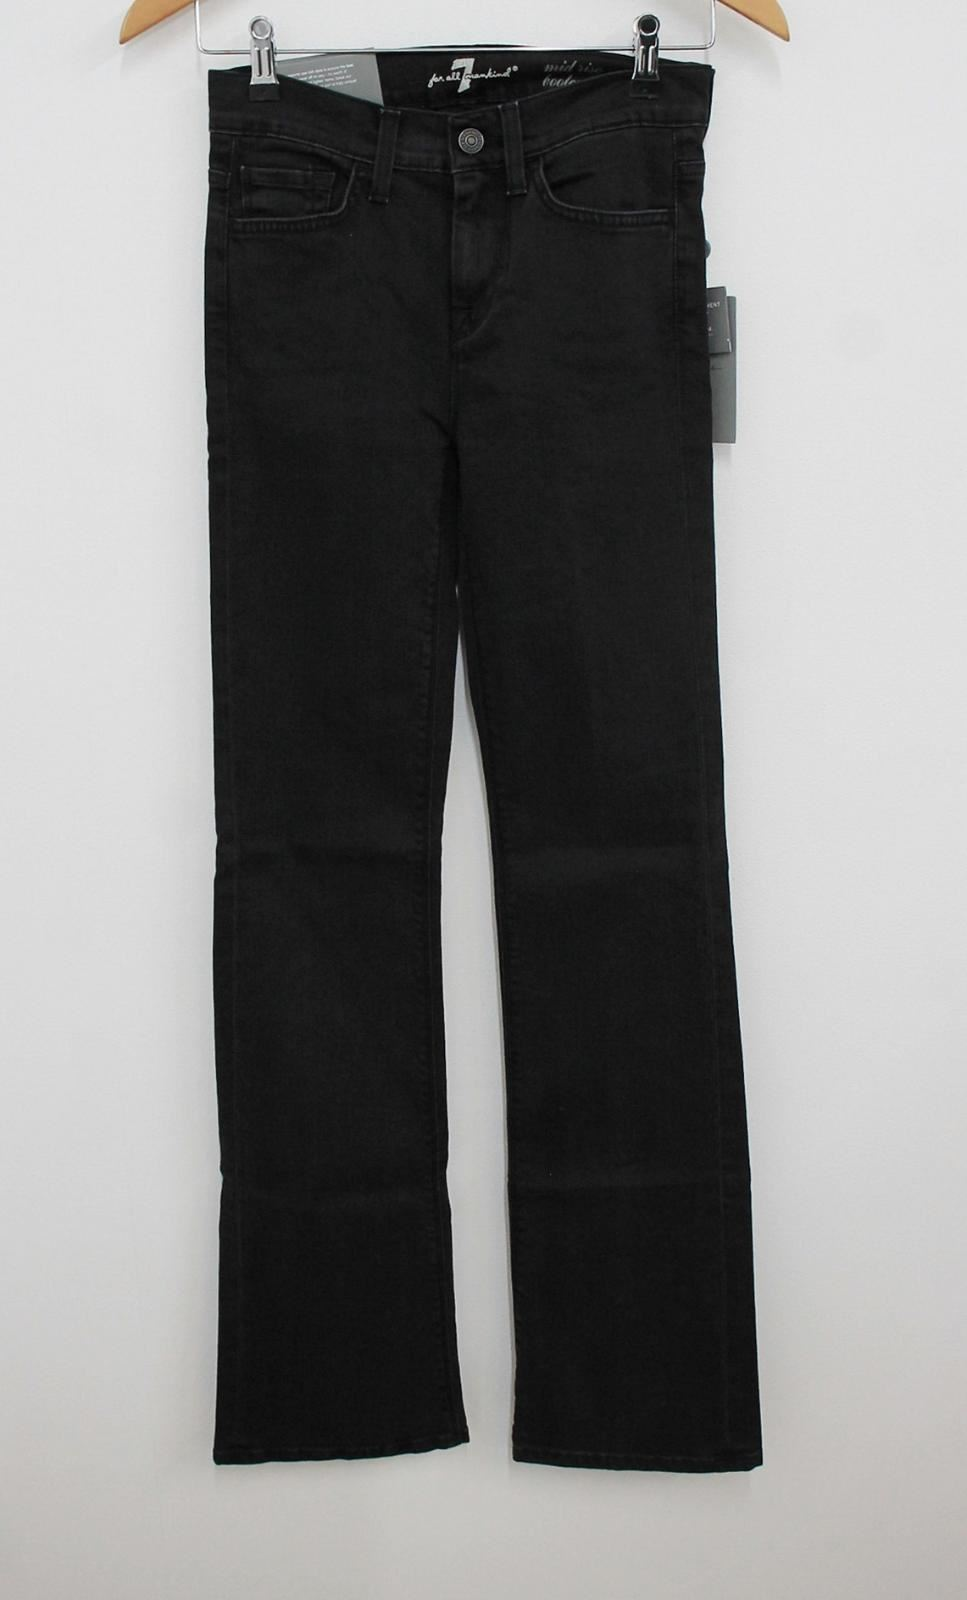 7 For All Mankind Femme Noir Mid Rise Bootcut Jambe Jeans 26 W26 L33 Bnwt